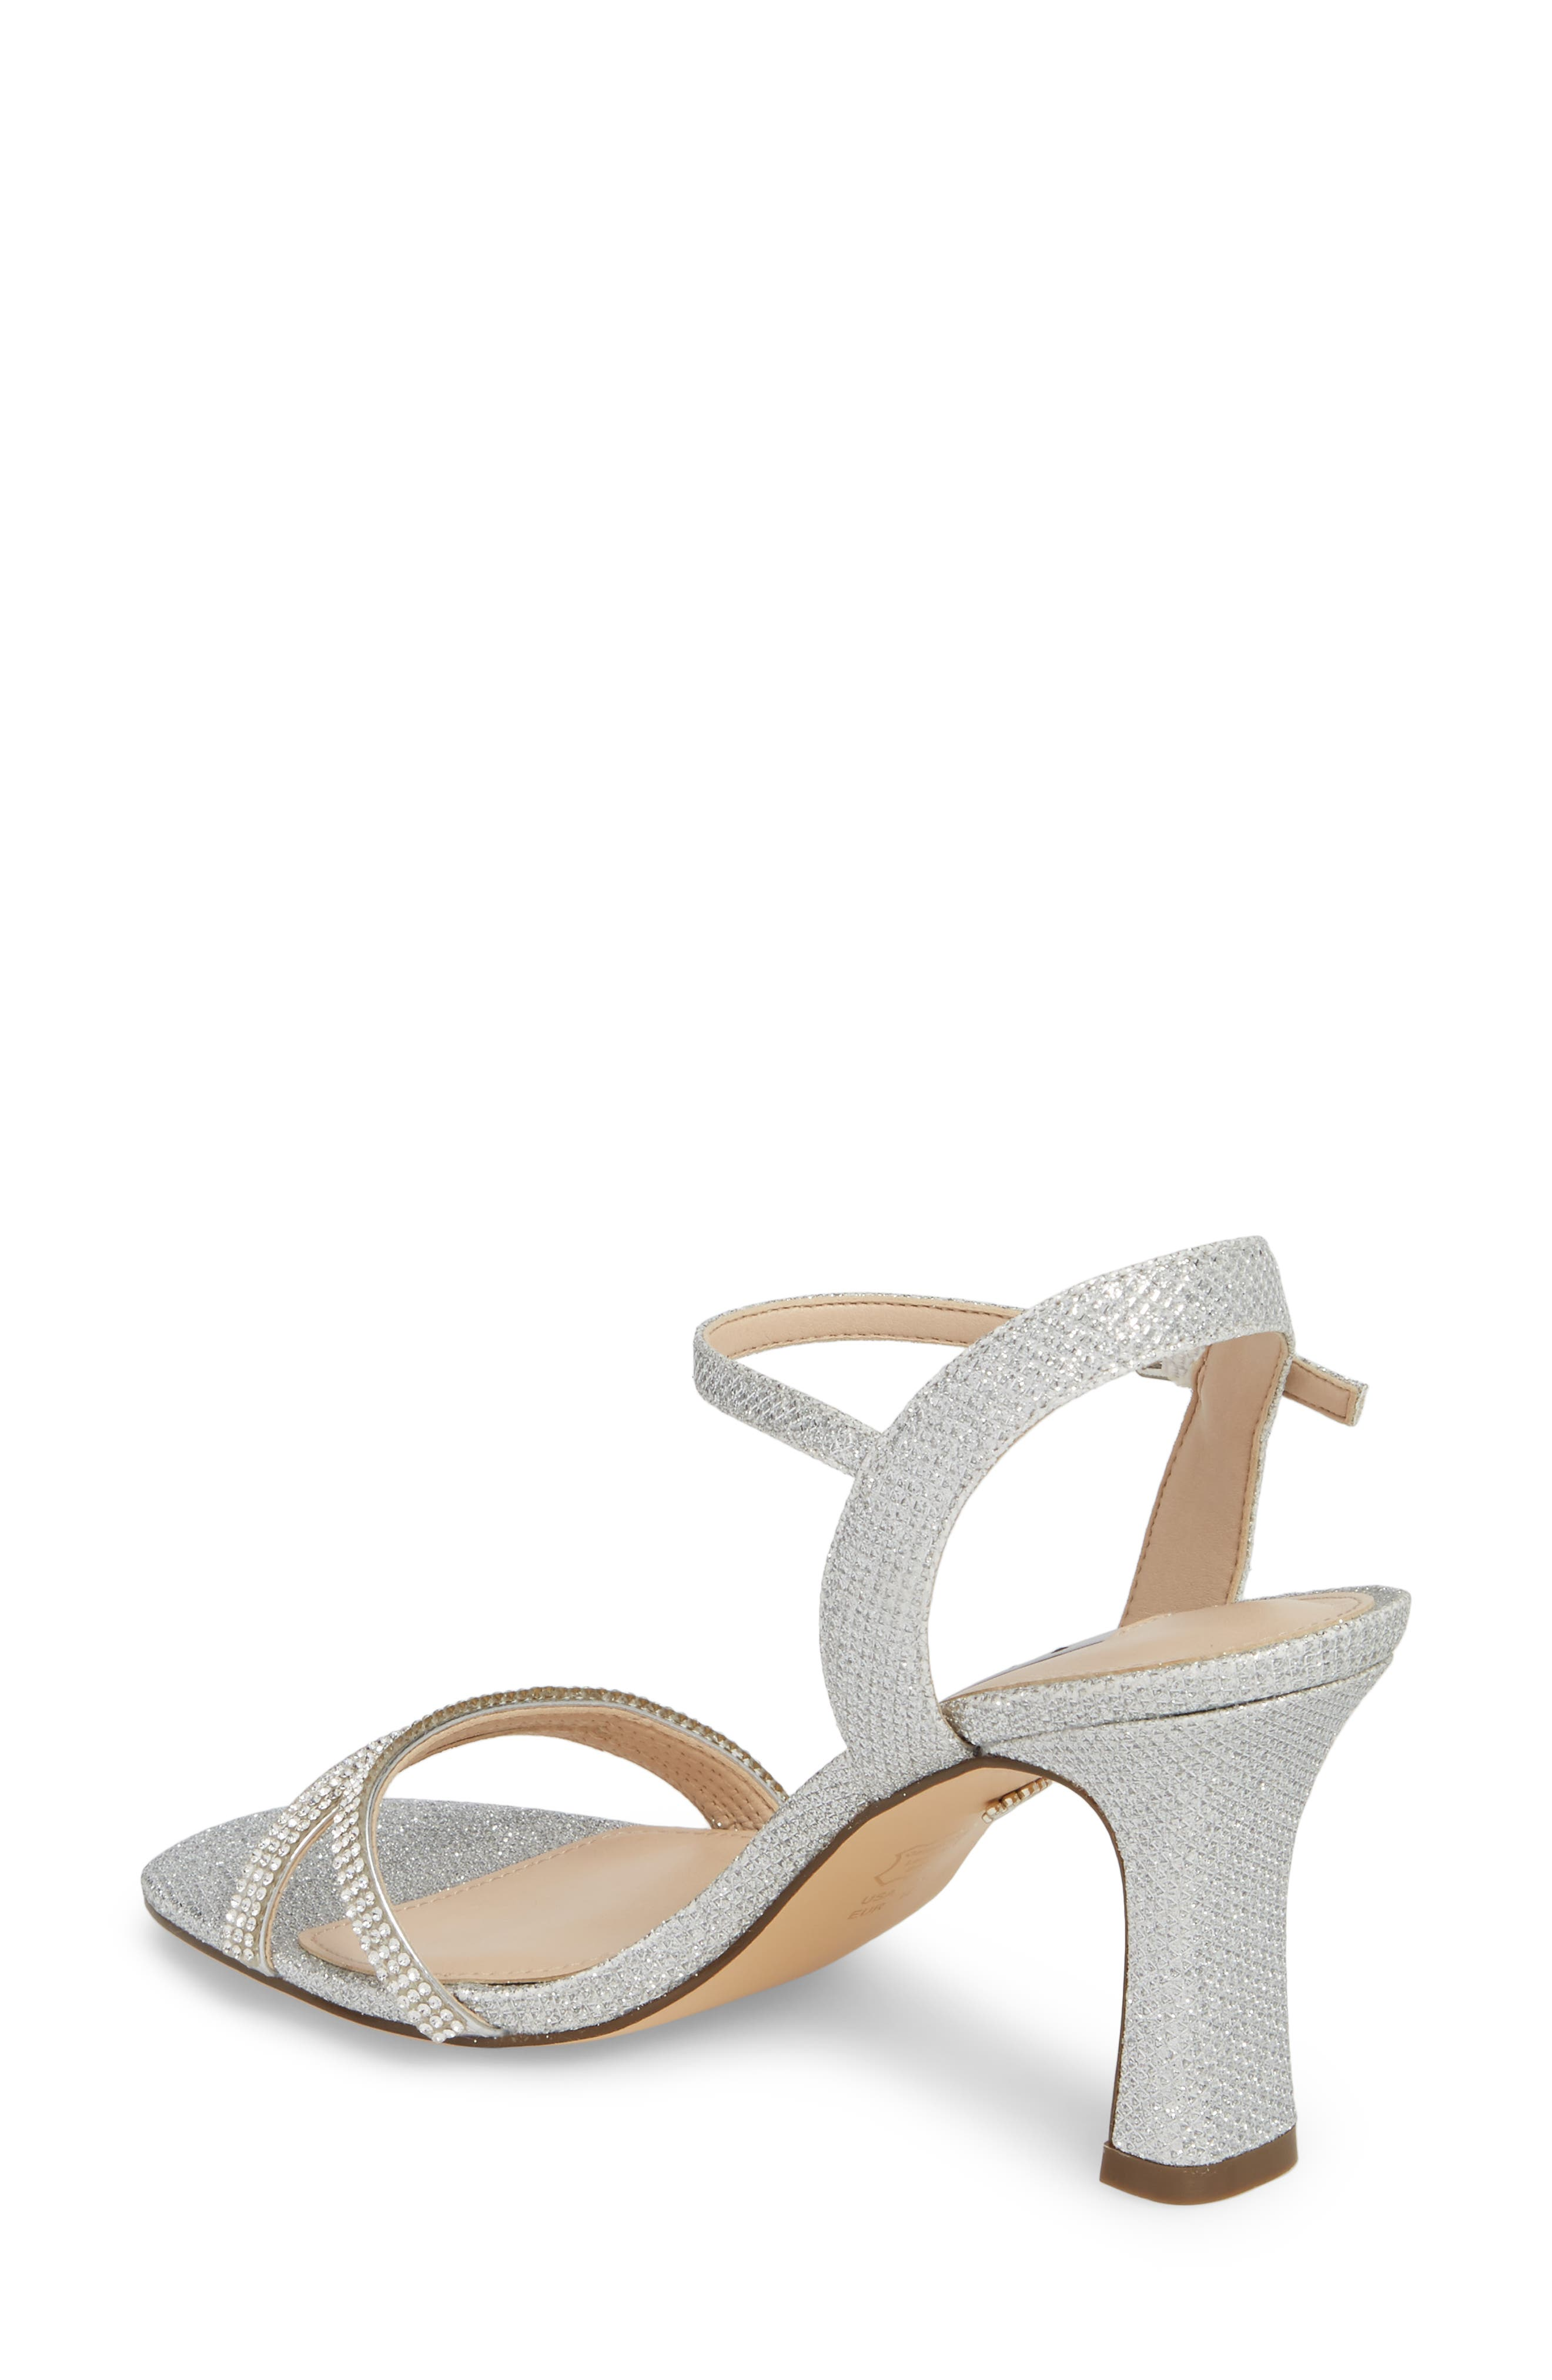 Avalon Ankle Strap Sandal,                             Alternate thumbnail 5, color,